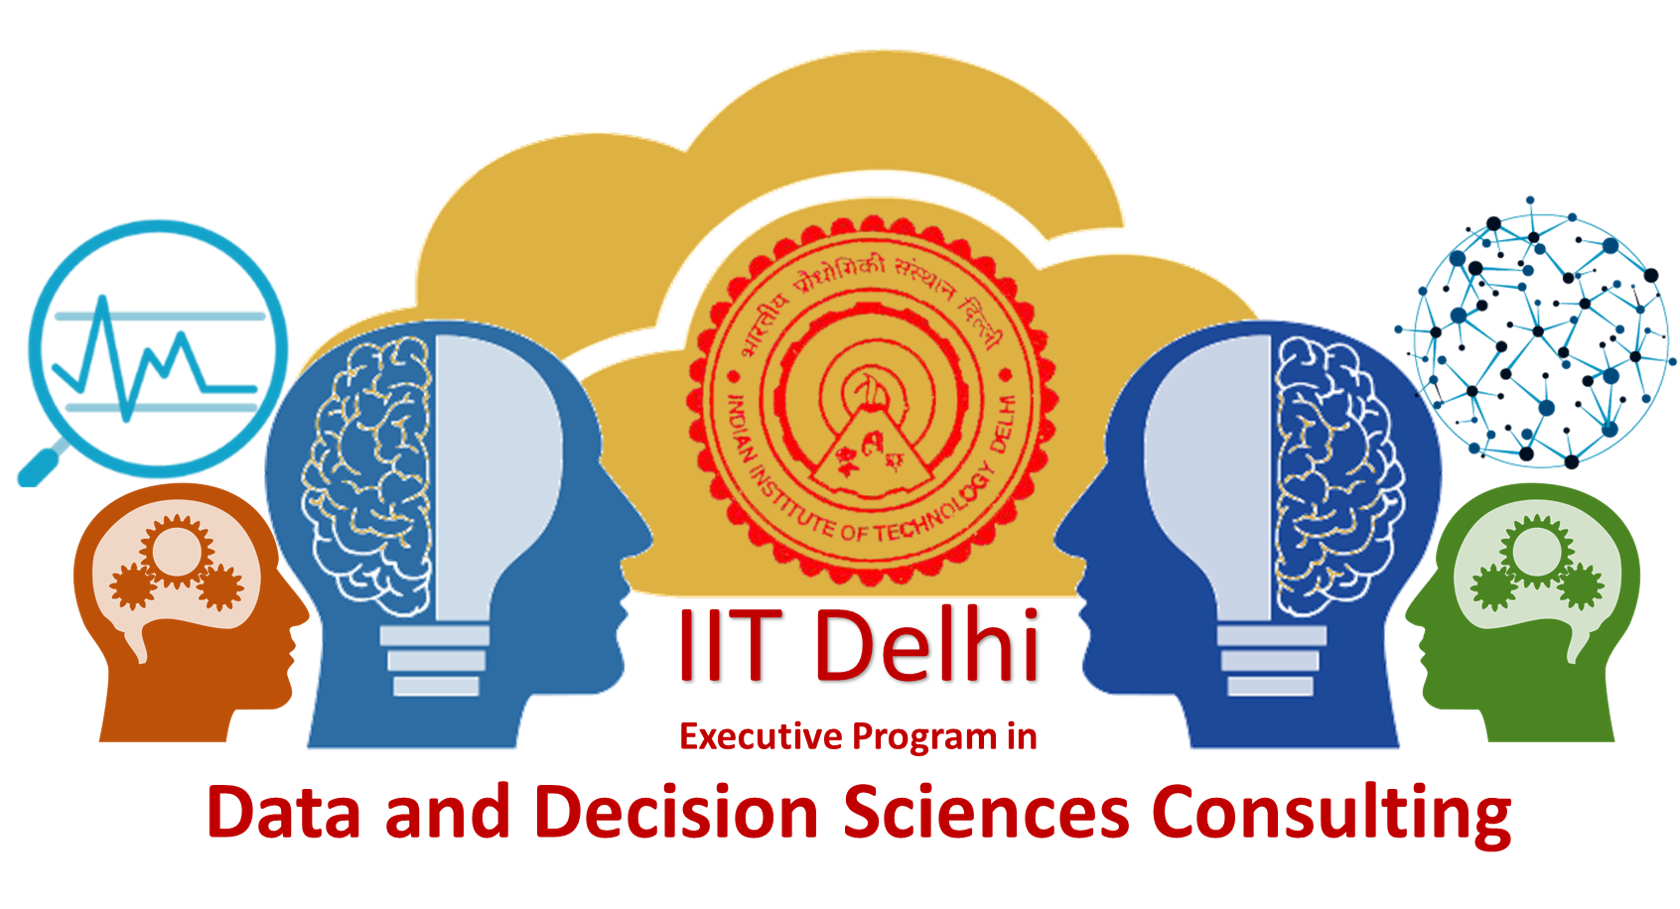 ai-ml-data-science-iit-delhi